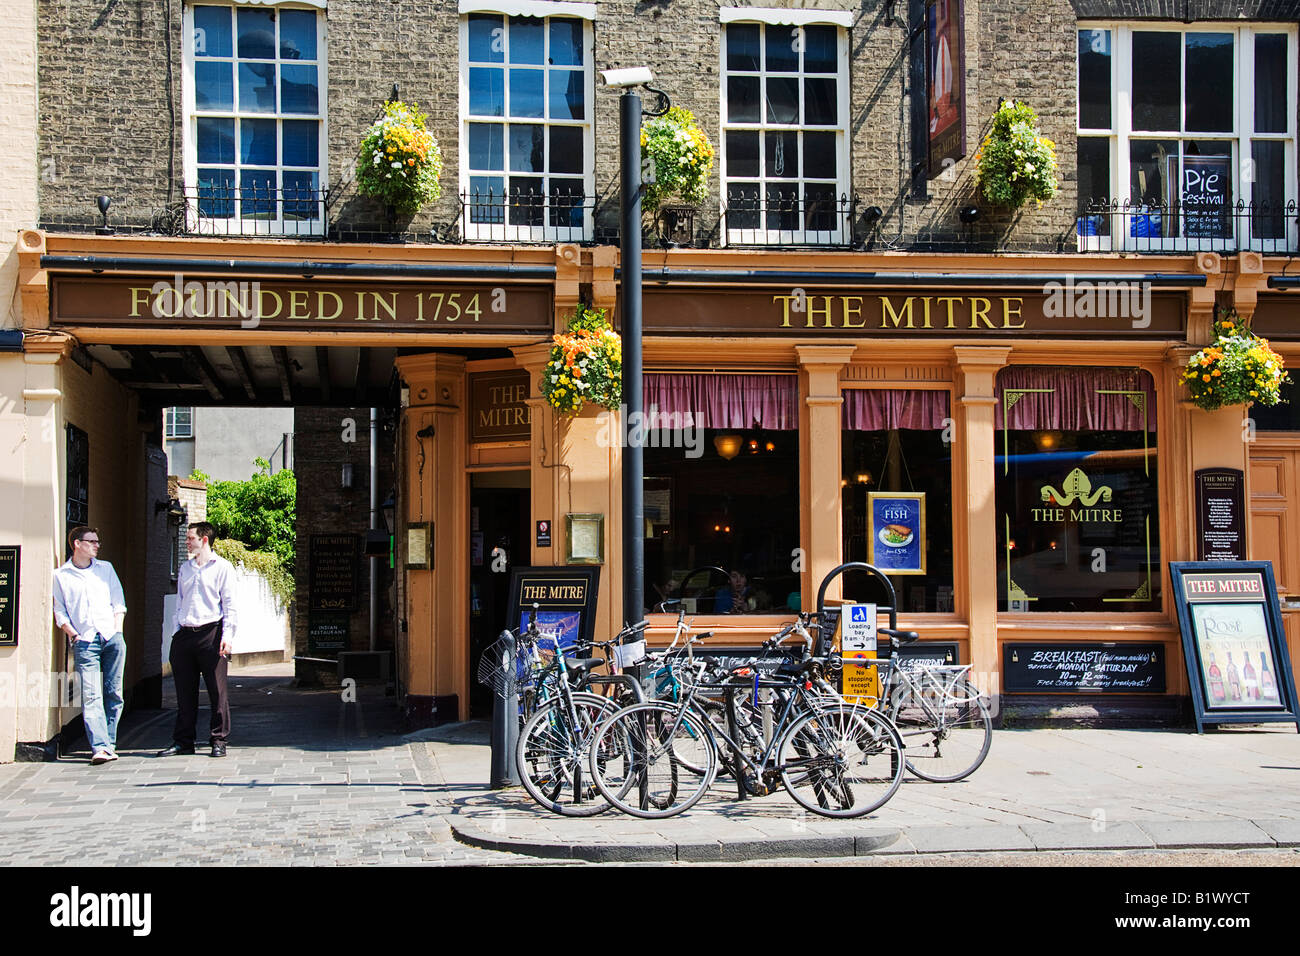 The Mitre, well known pub in Bridge Street - Stock Image